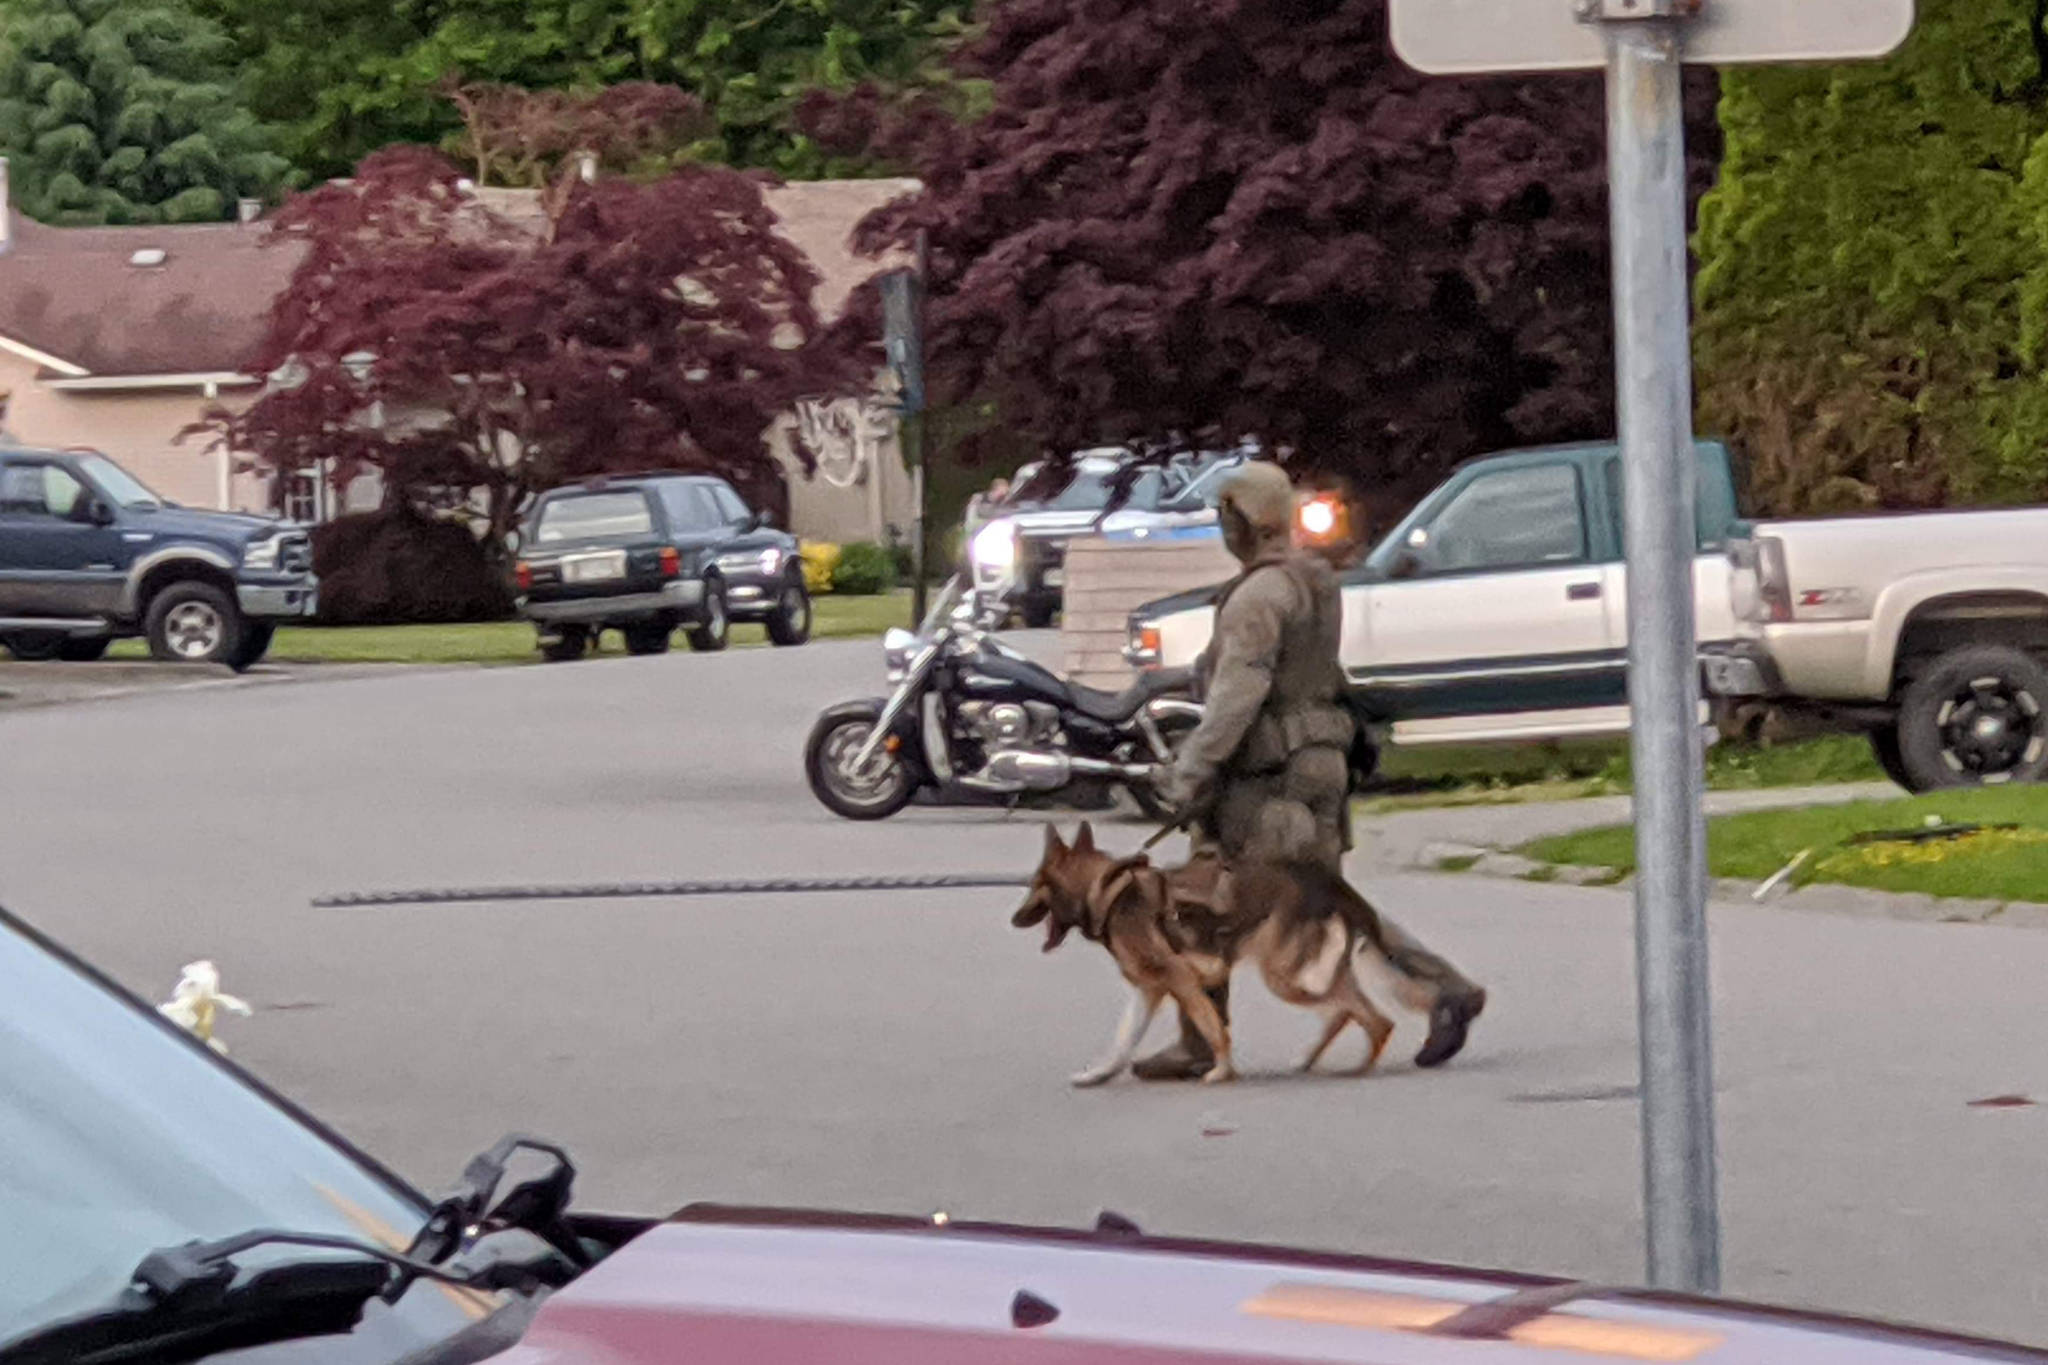 An RCMP officer with a police dog near the scene of a police incident involving shots fired, according to witnesses, at a residence on Christina Drive in Chilliwack on May 23, 2020. (Submitted)